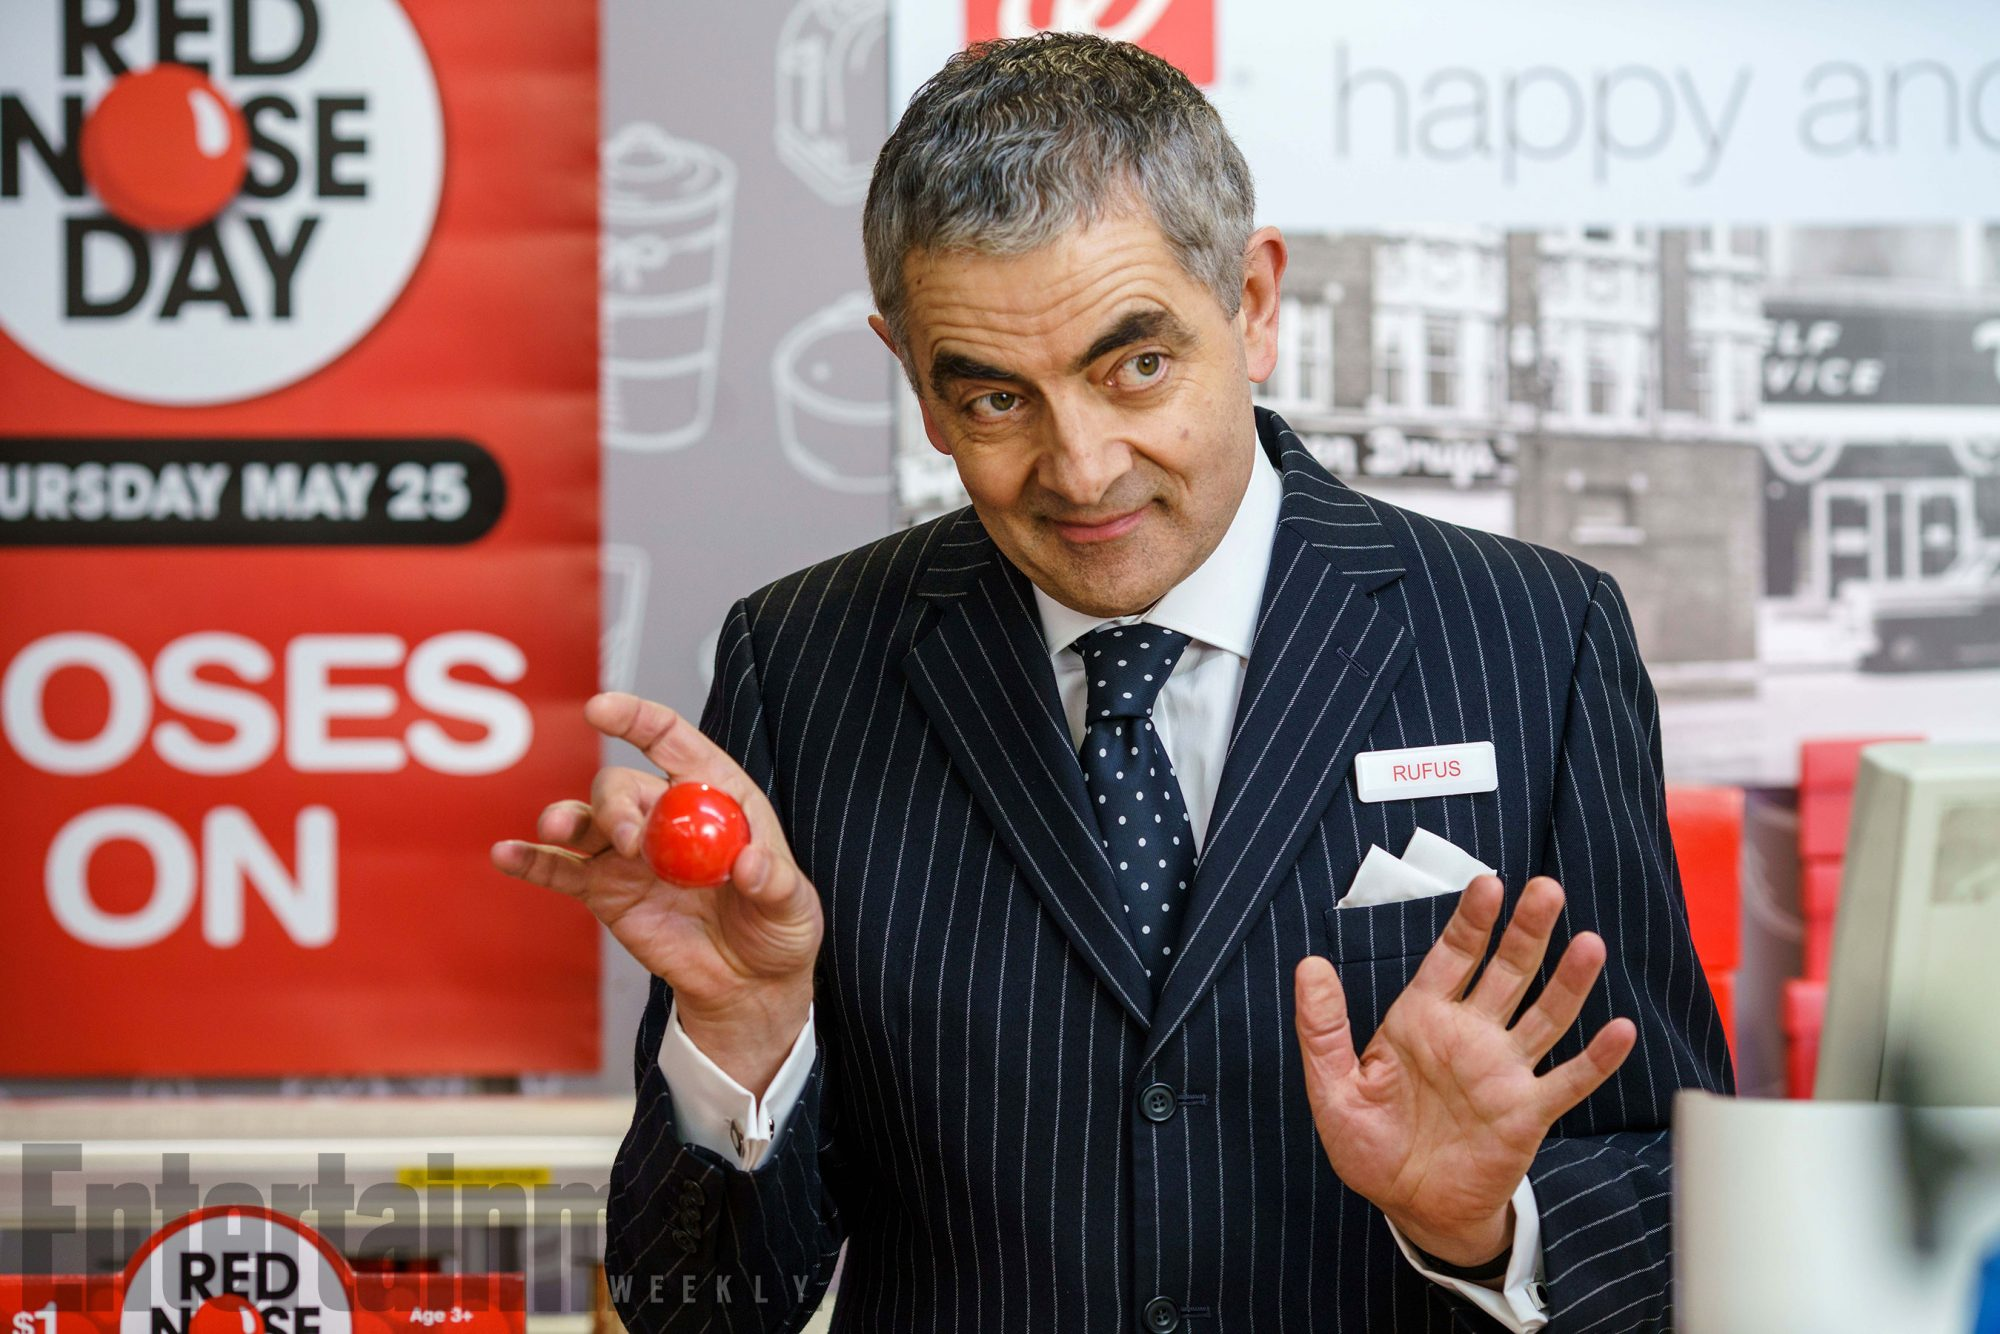 Rowan Atkinson as Rufus for Red Nose Day Actually filmed in store